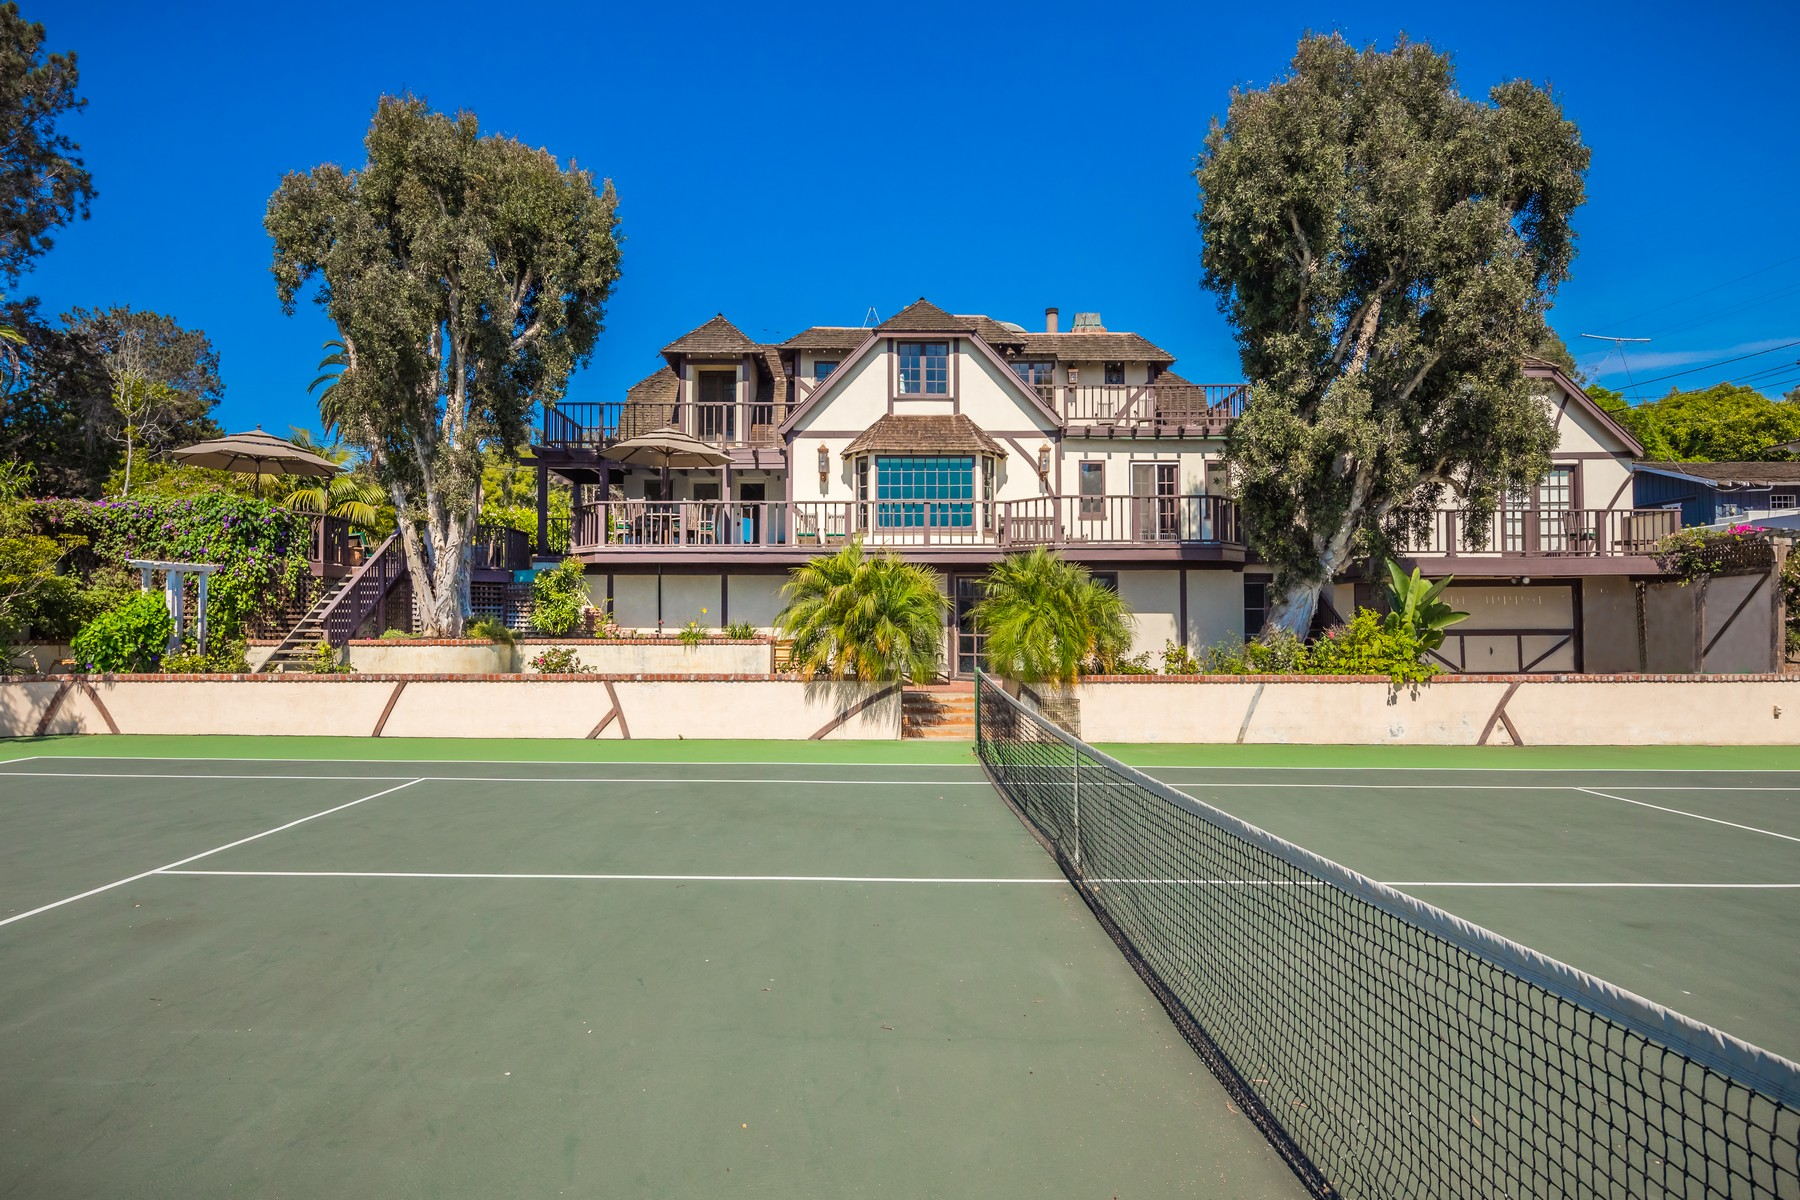 Single Family Home for Active at 355 14th Street 355 14th Street Del Mar, California 92014 United States